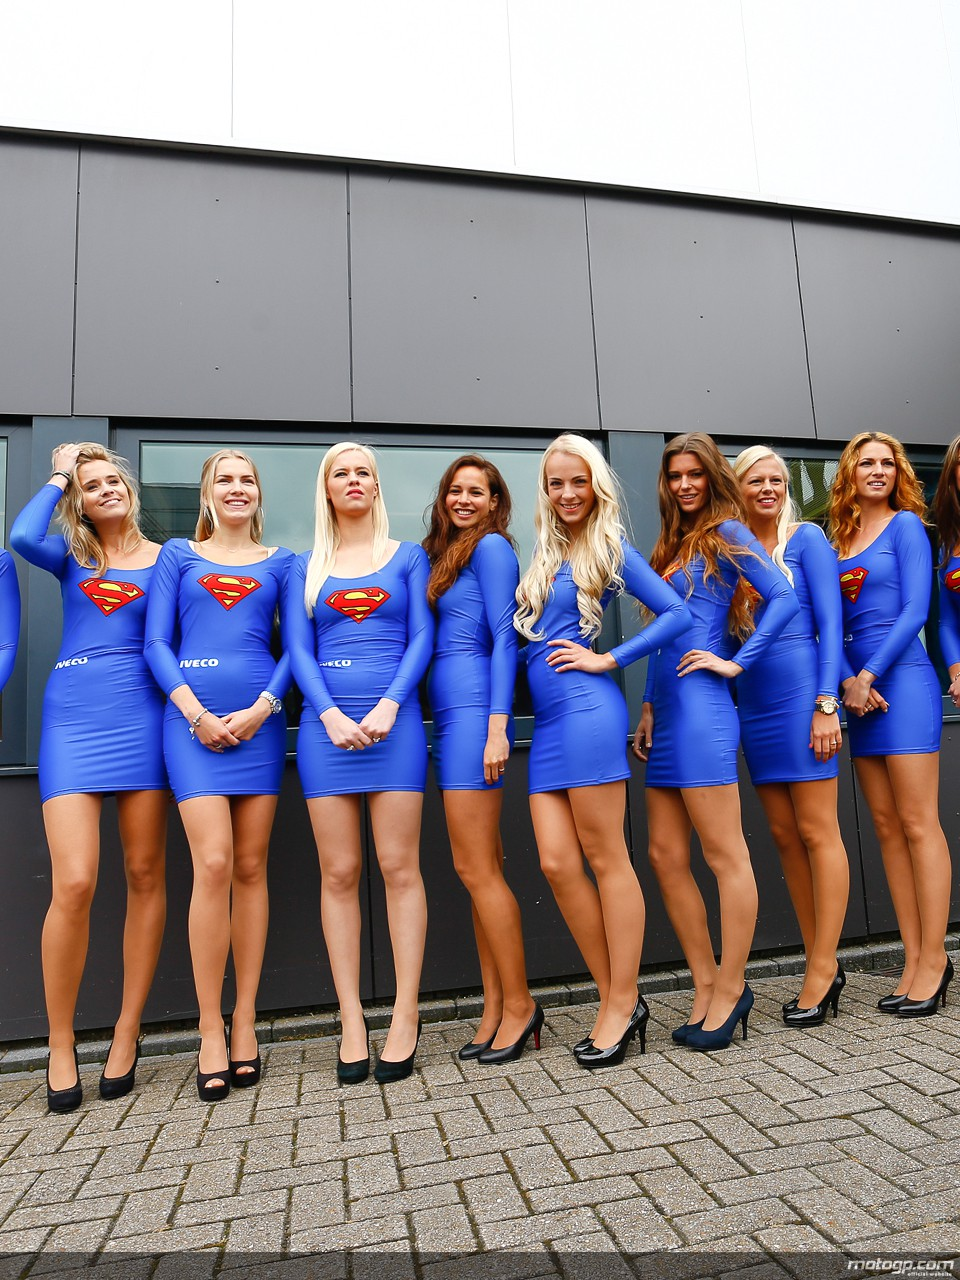 https://i1.wp.com/photos.motogp.com/2013/06/29/paddock_girl_16_original.jpg